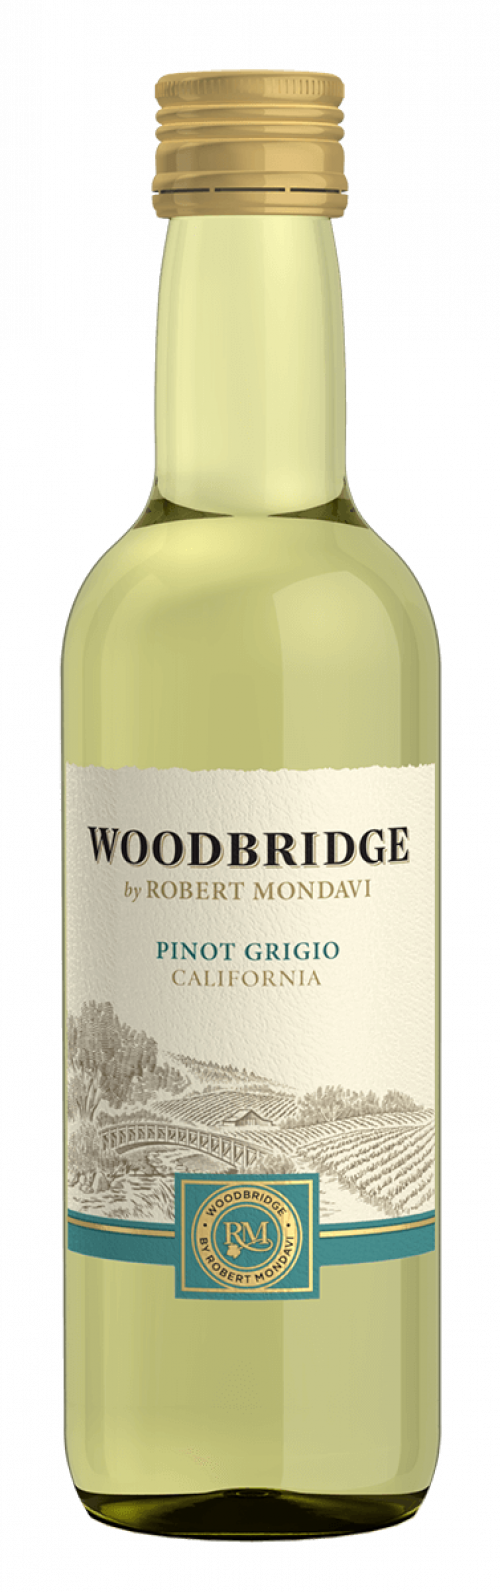 Woodbridge Pinot Grigio 187ml